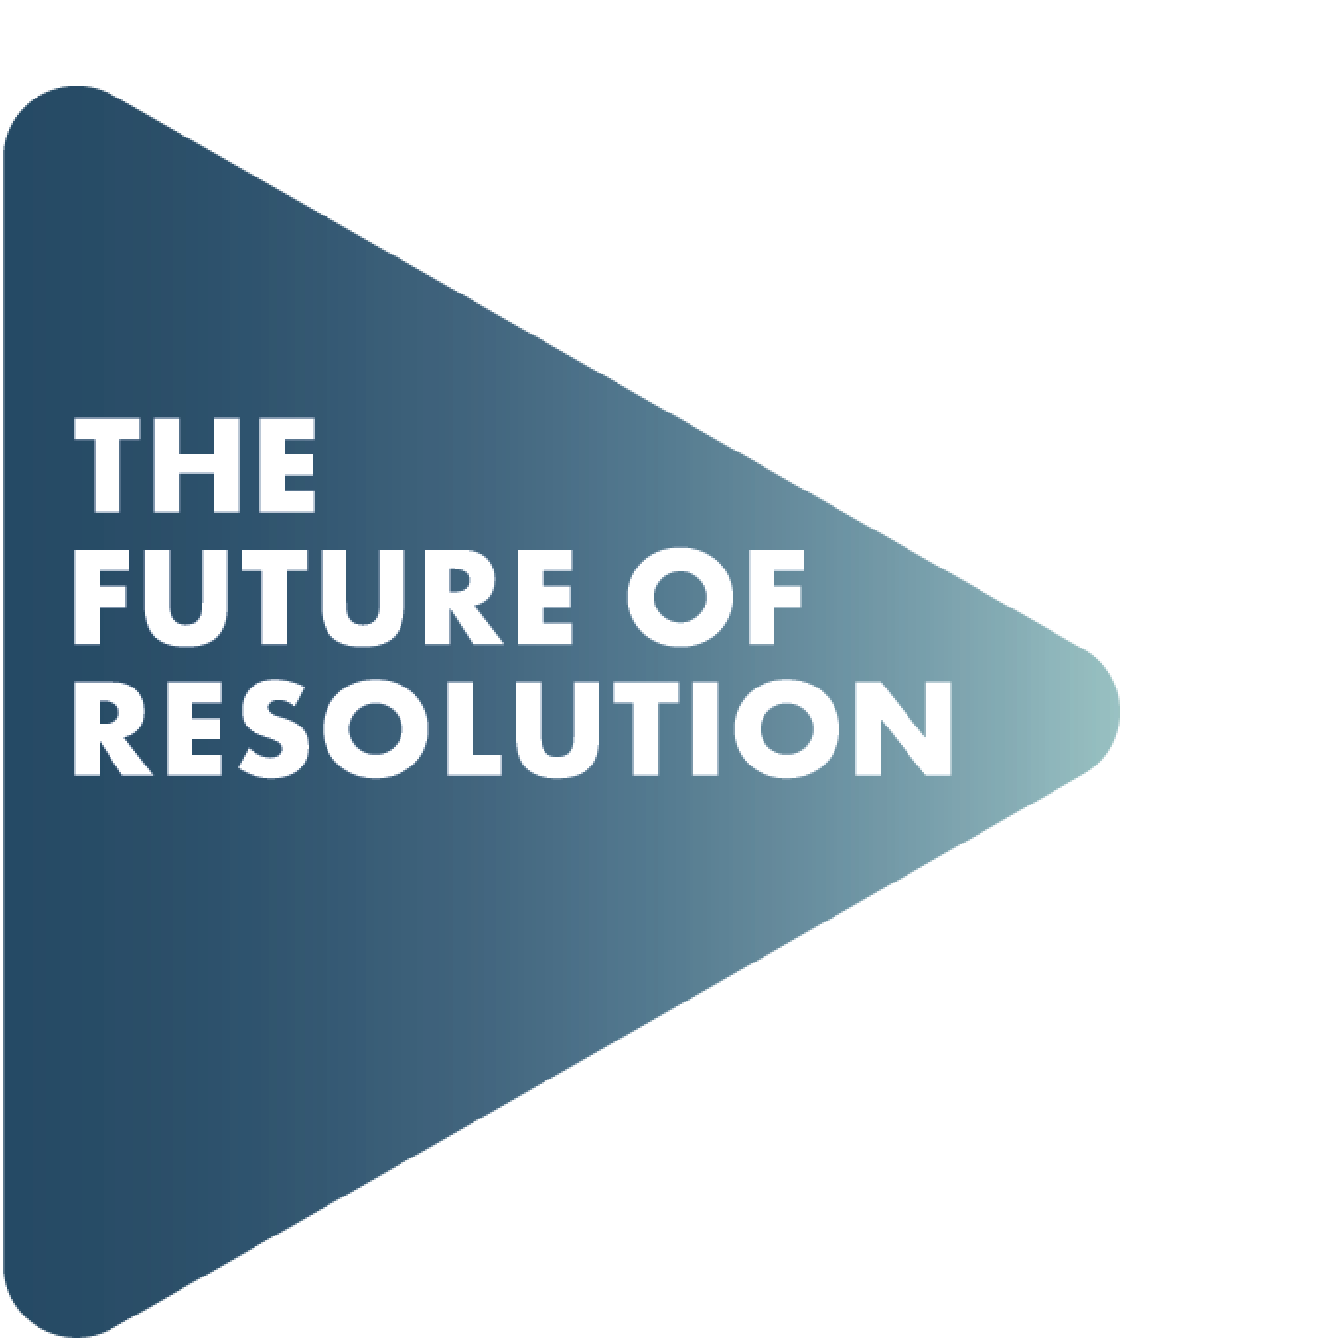 Episode 1.1: Miles & The Future of Resolution